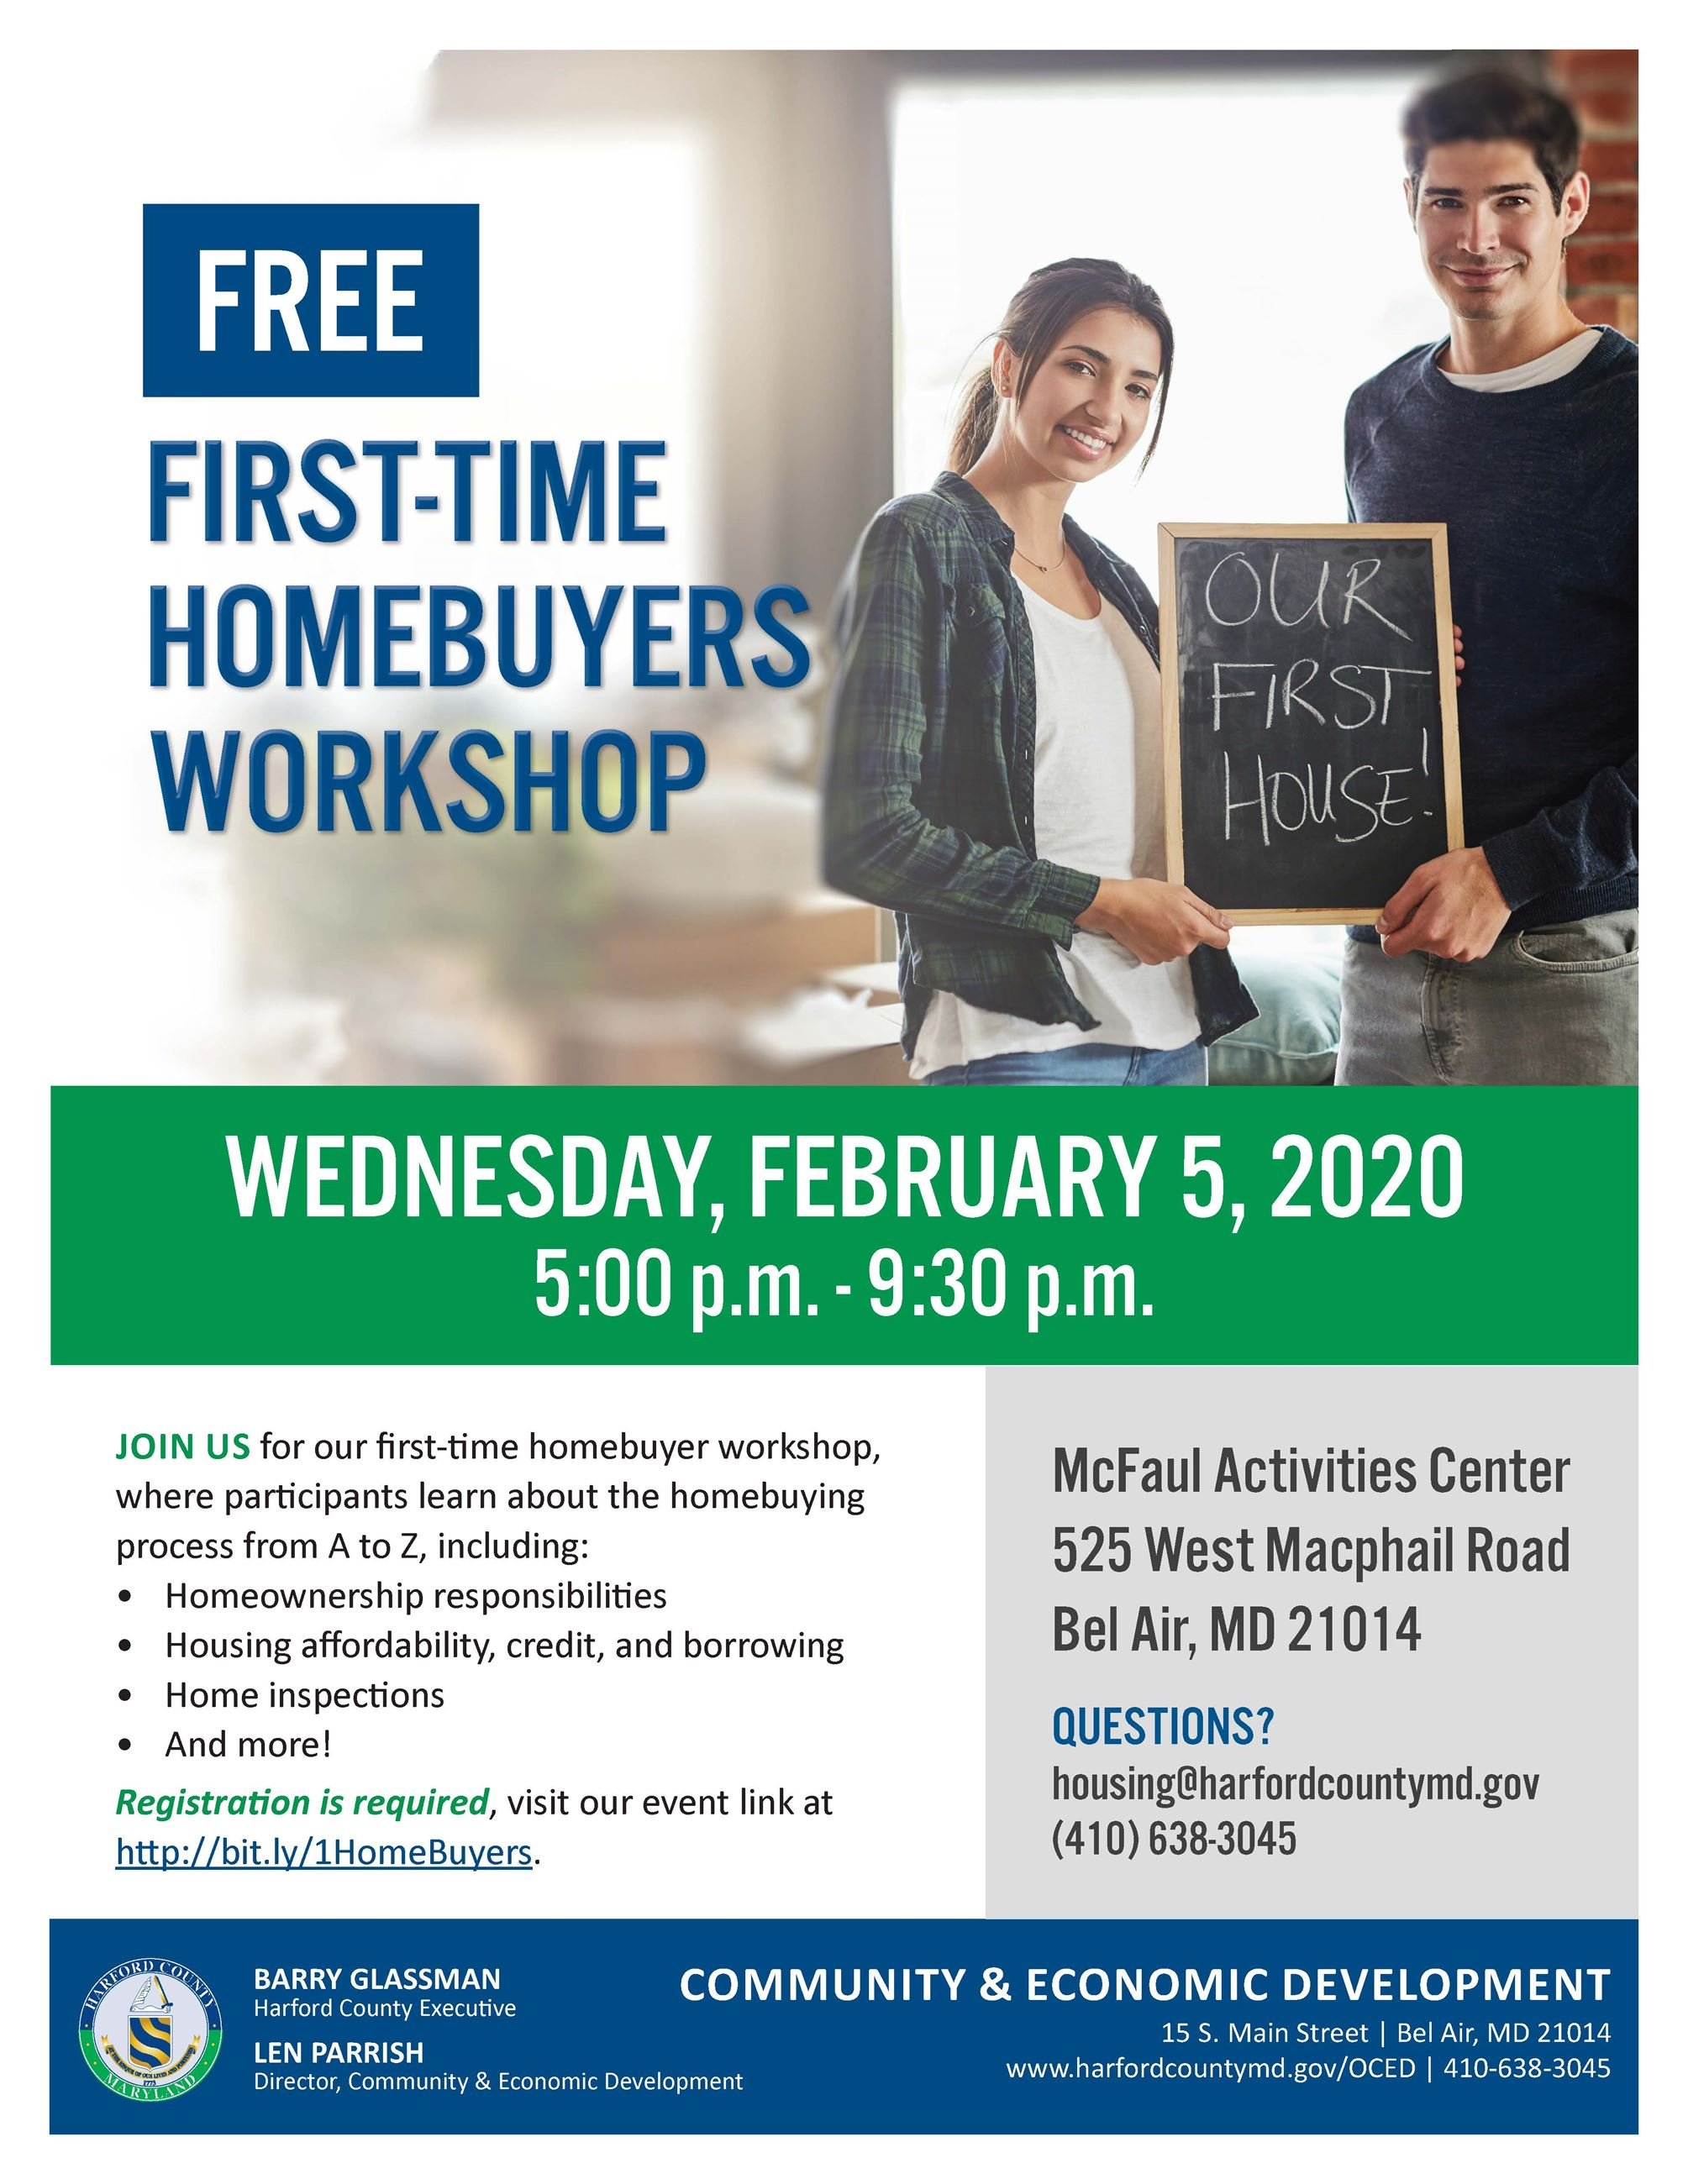 First Time Homebuyers Workshop Flyer_2020_02